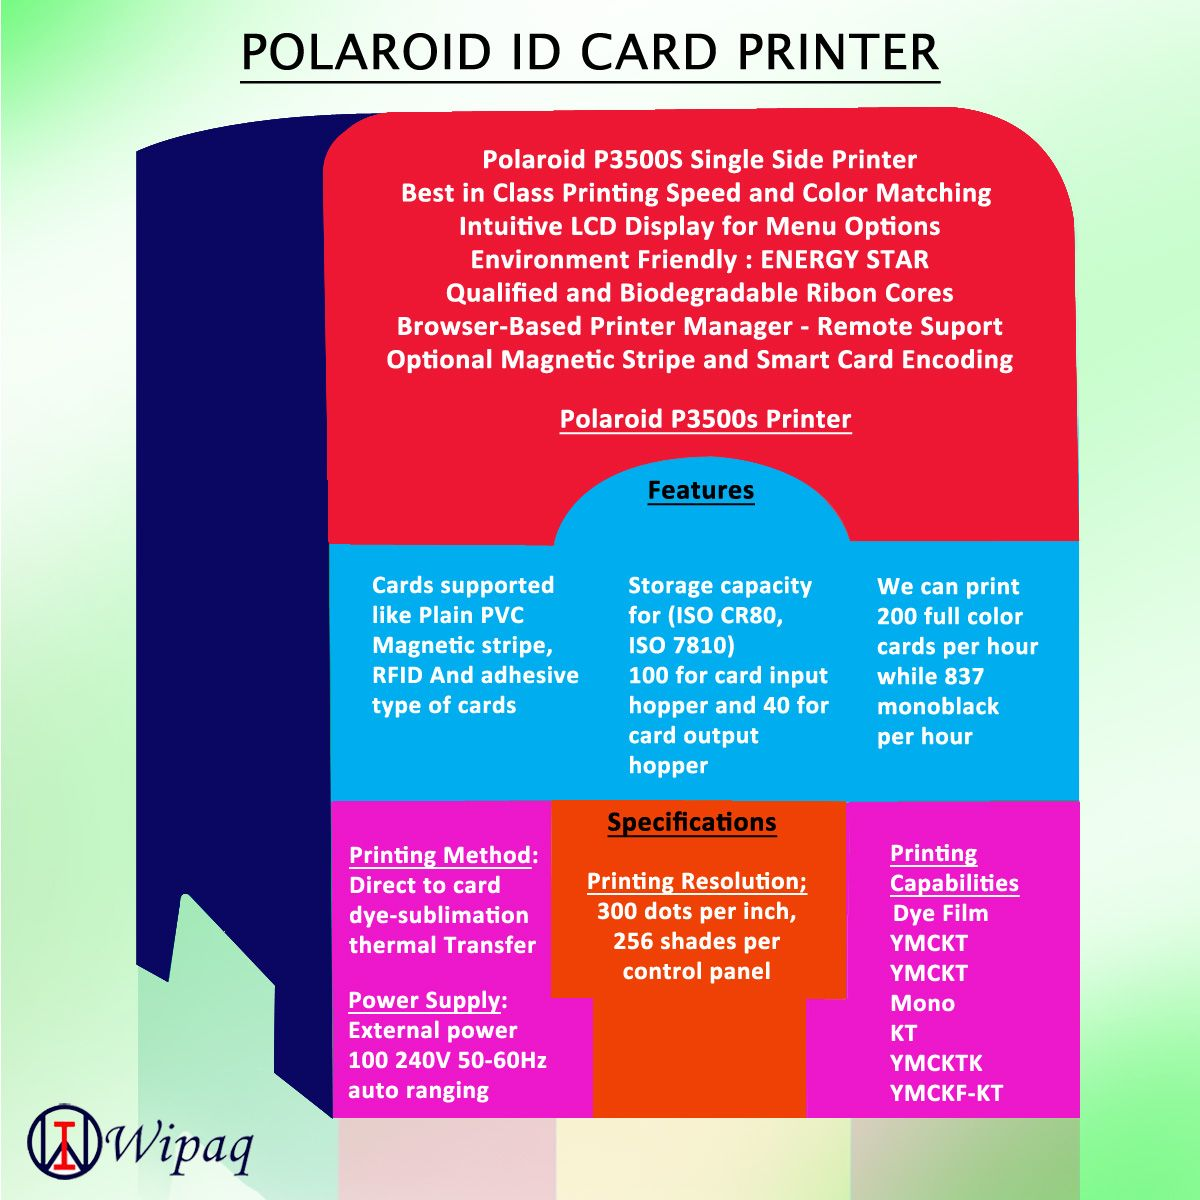 Best color printing quality - Polaroid Card Printer Brings Plastic Card Single Sided Printer Manufacturing Back To The United States Photo Card Id Print Quality Print Speed